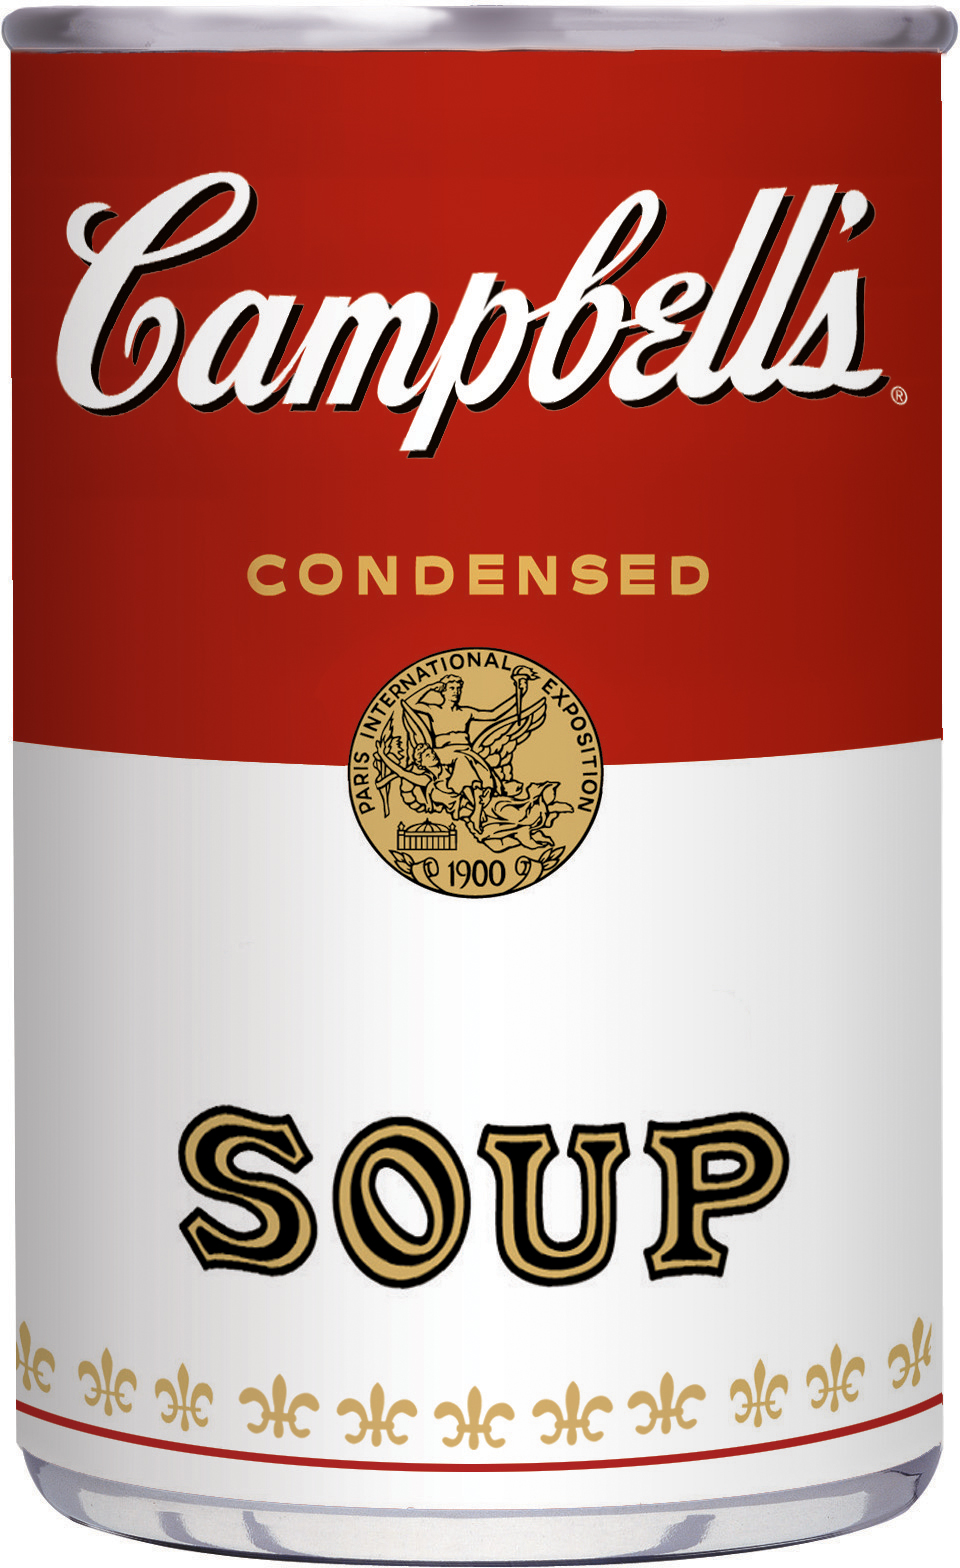 Campbell soup company for Canned fish assholes